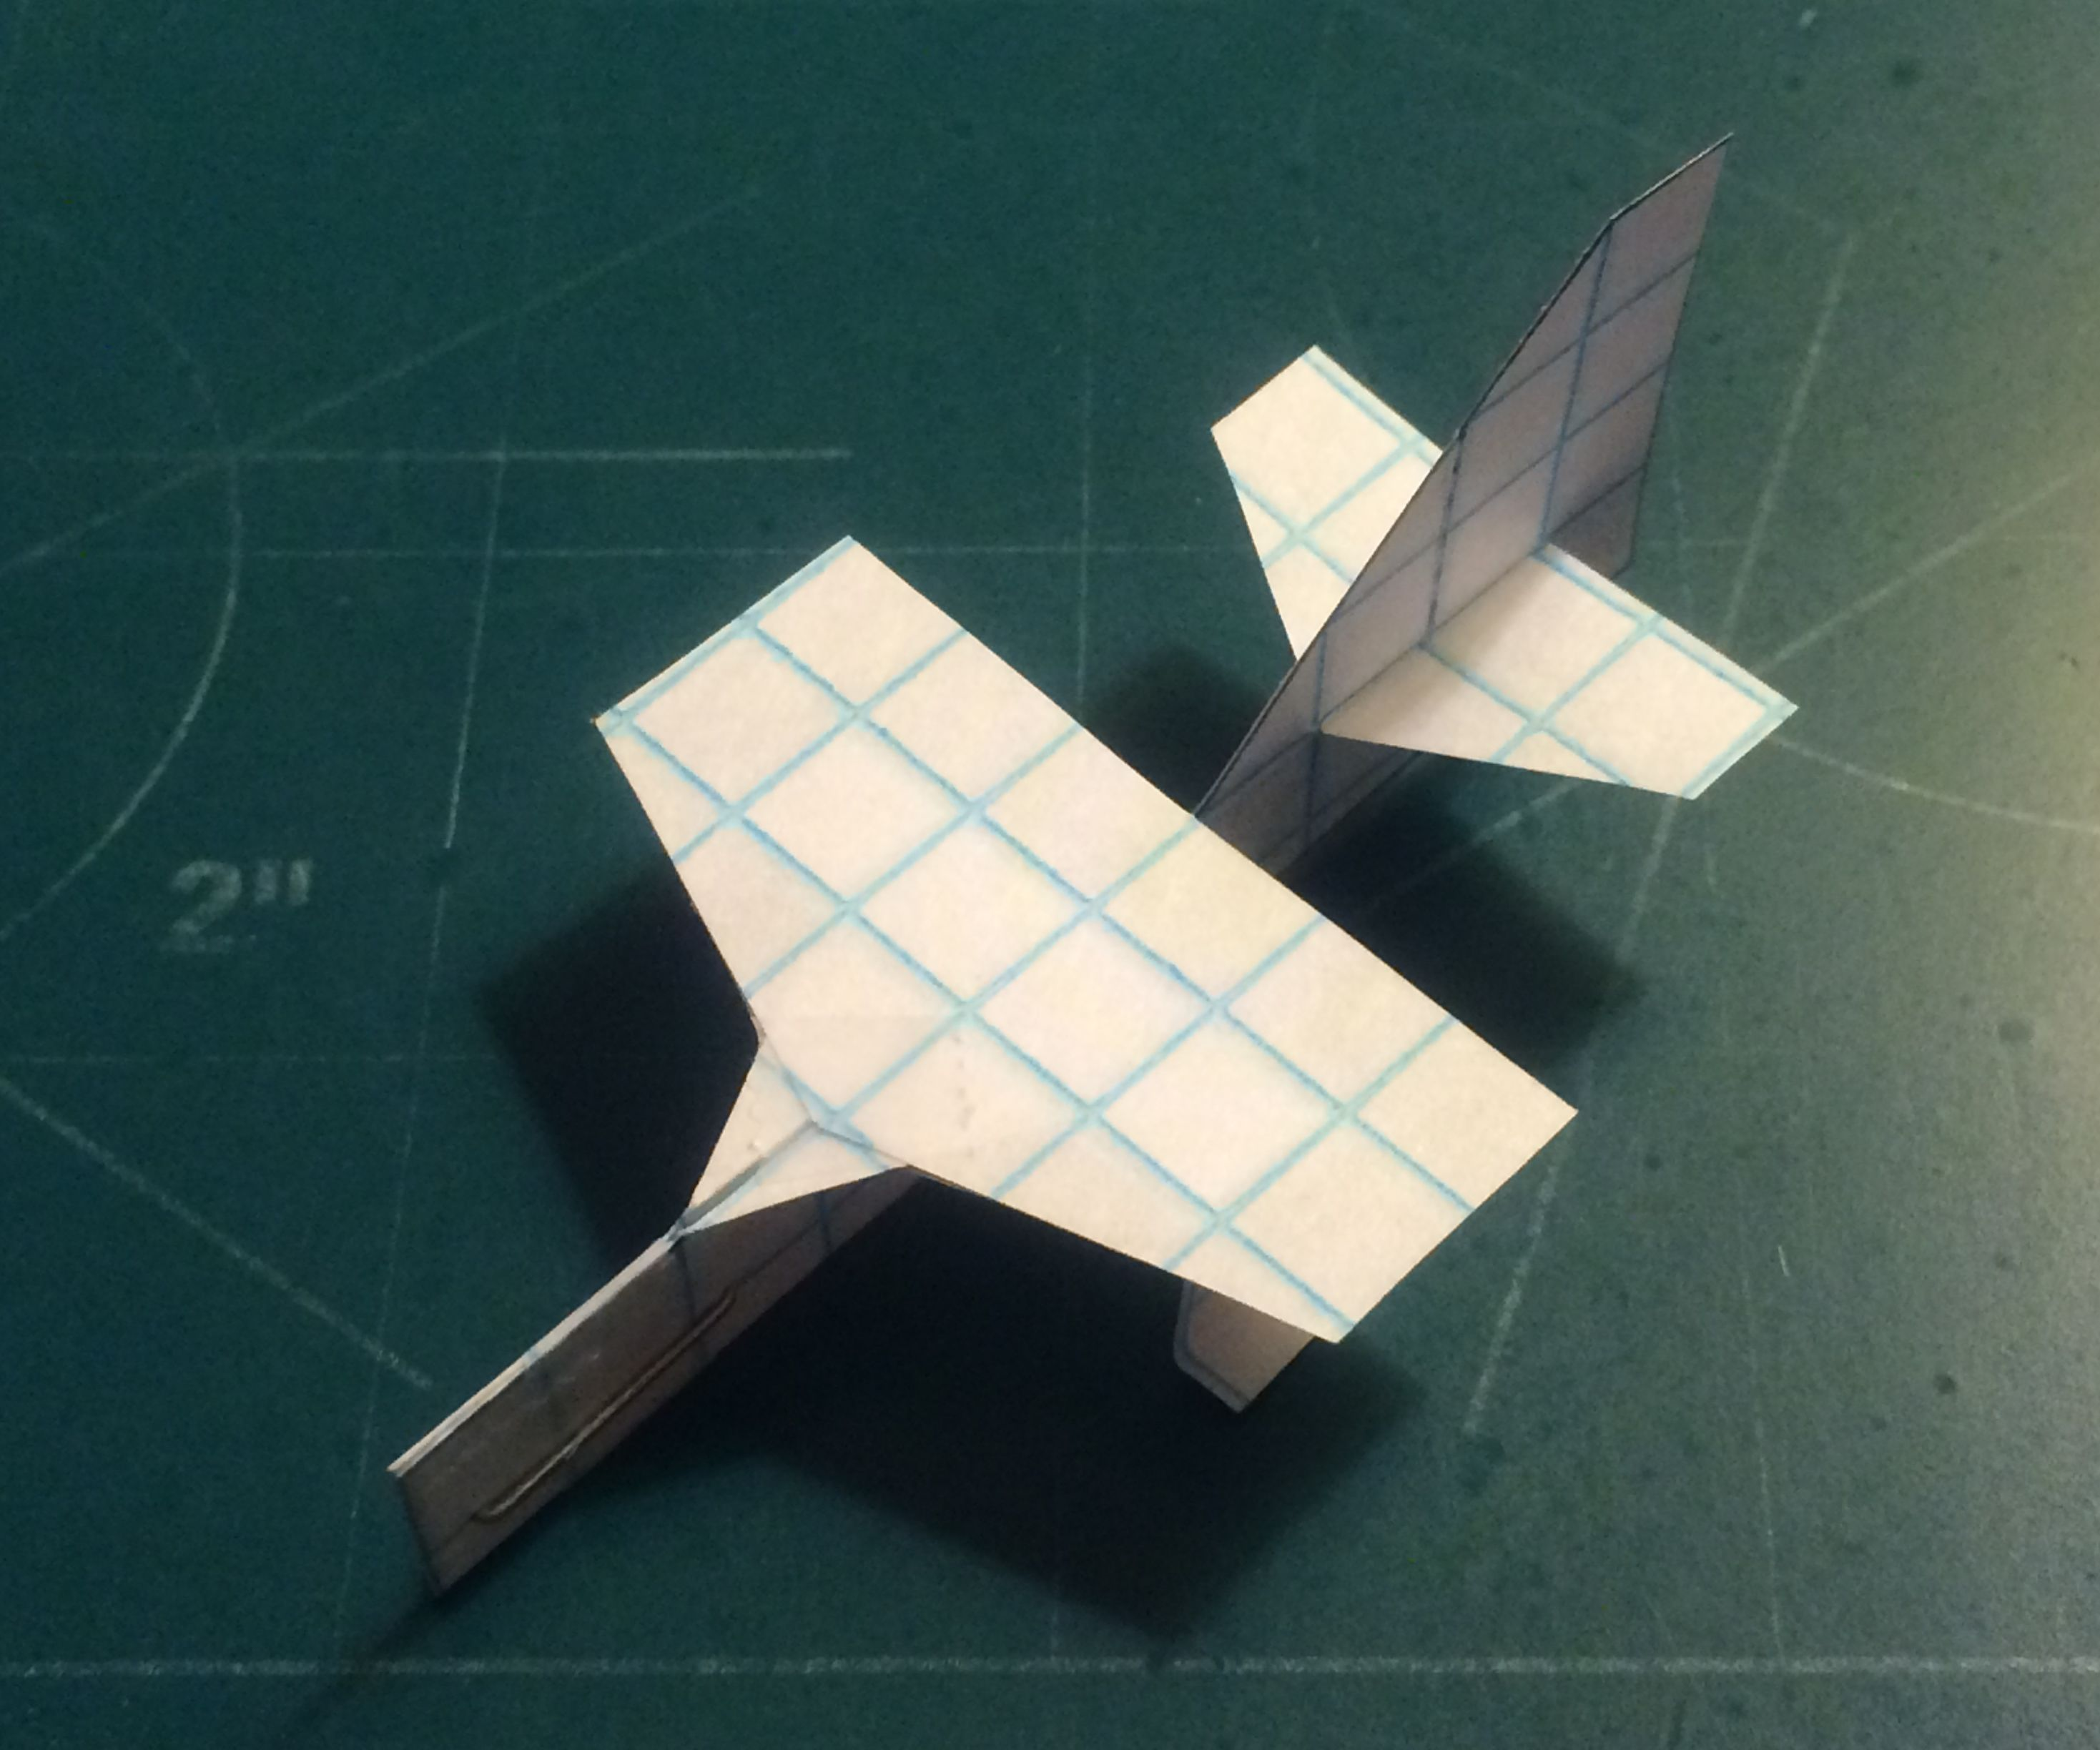 How To Make The Turbo SkyGnat Paper Airplane